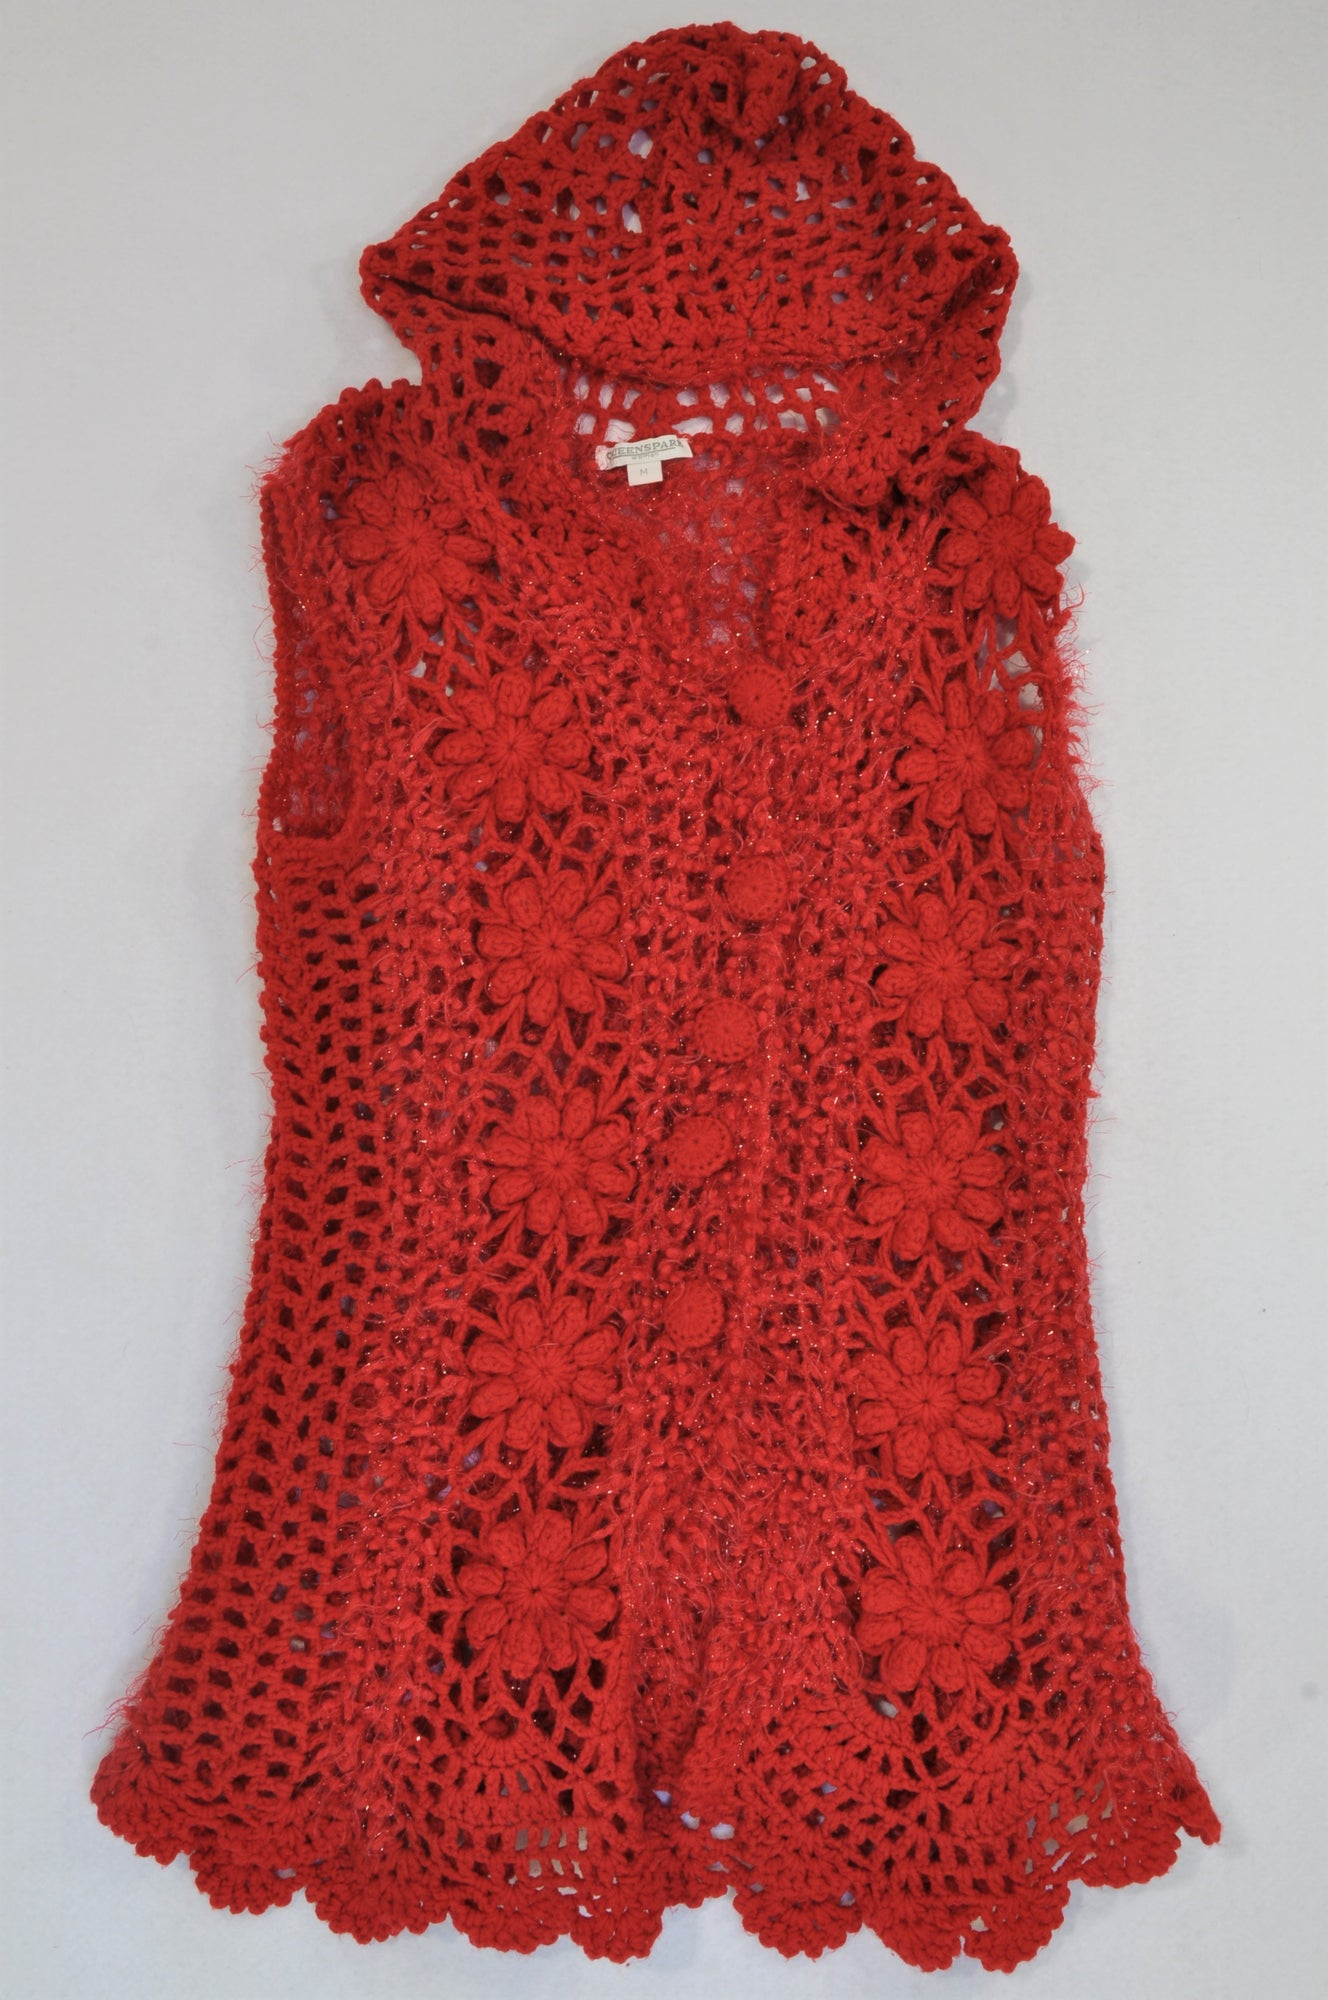 Queenspark Red Floral Knit Hooded Cardigan Women Size M